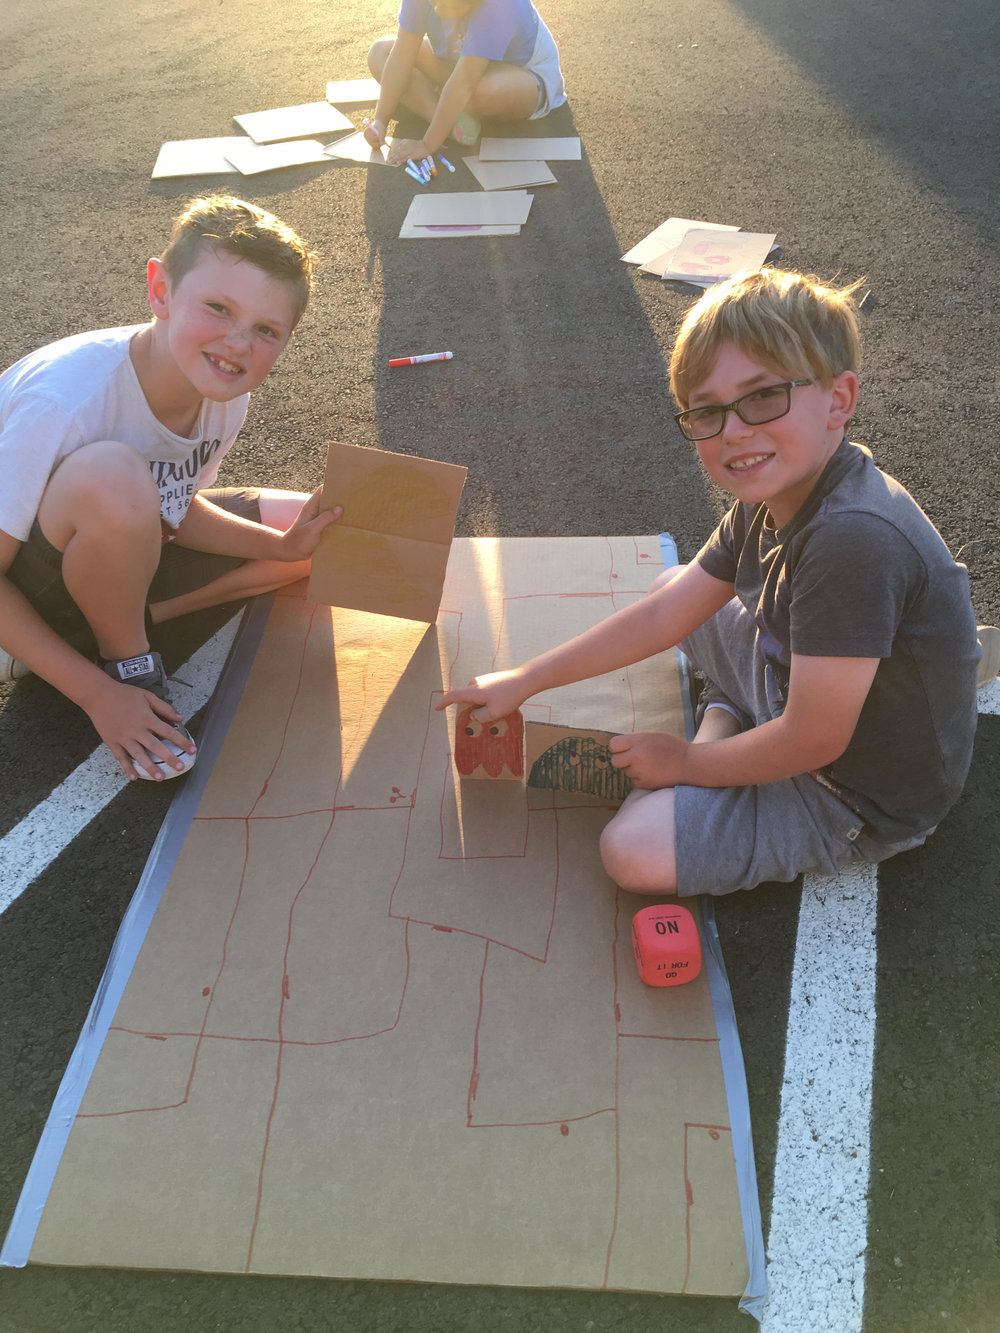 Felix Guss and Matthew Ciecek (from left) work together on their design at the Makerspace Family Night. All photos courtesy: Michelle Ciecek